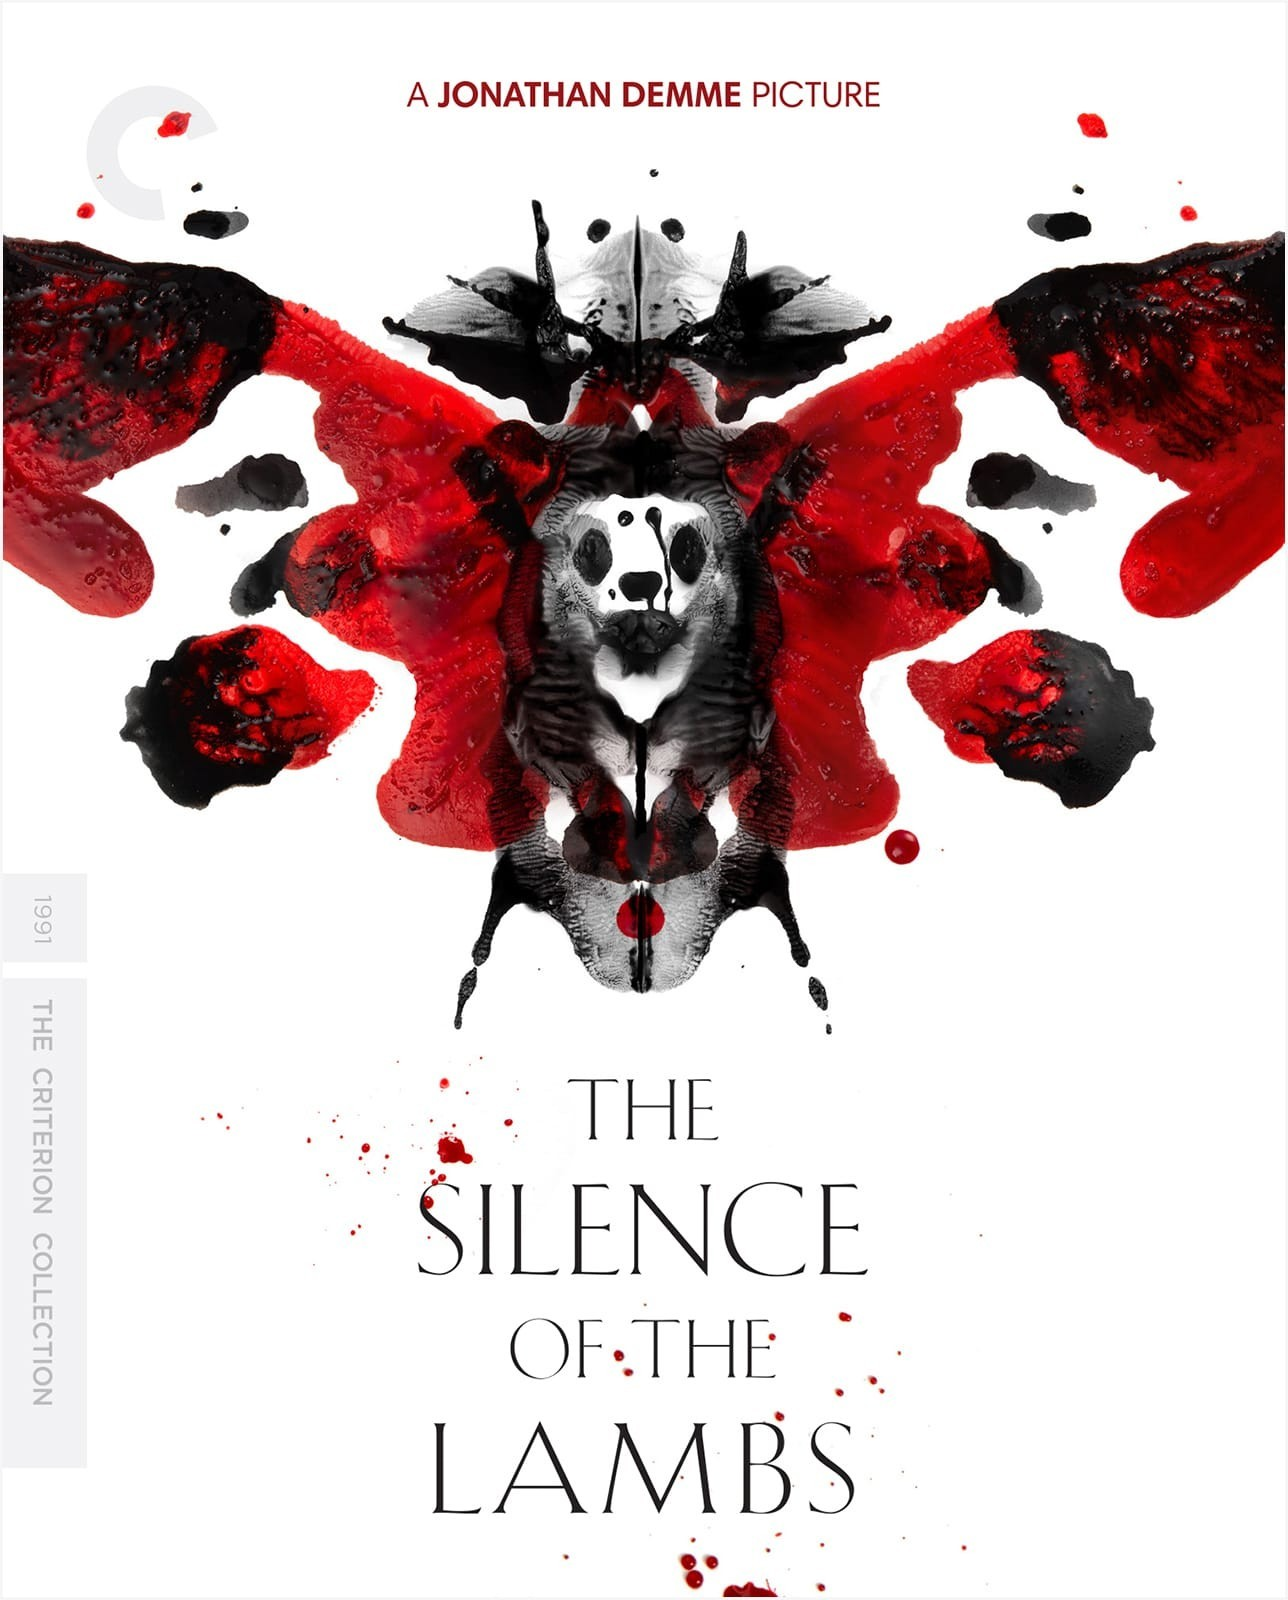 The Silence of the Lambs (The Criterion Collection)(1991) Blu-ray